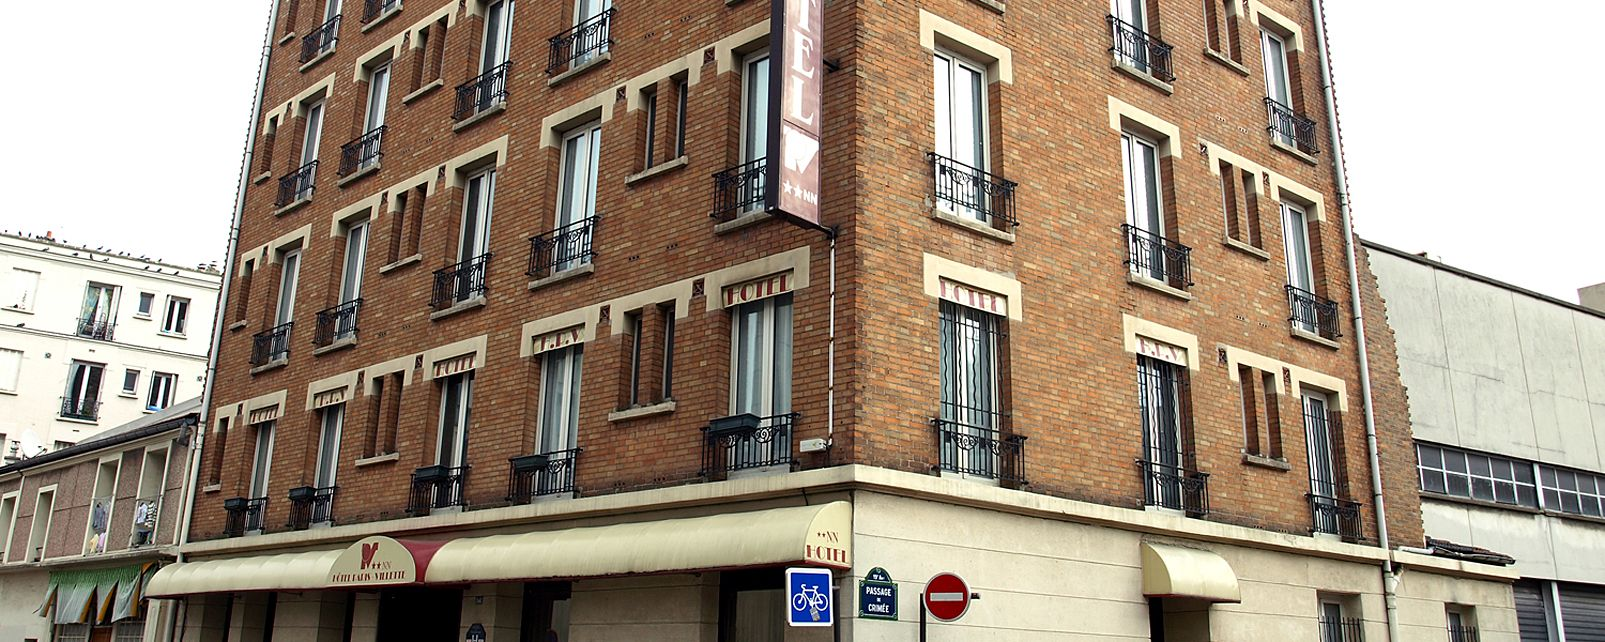 Hotel Paris Villette Hotel